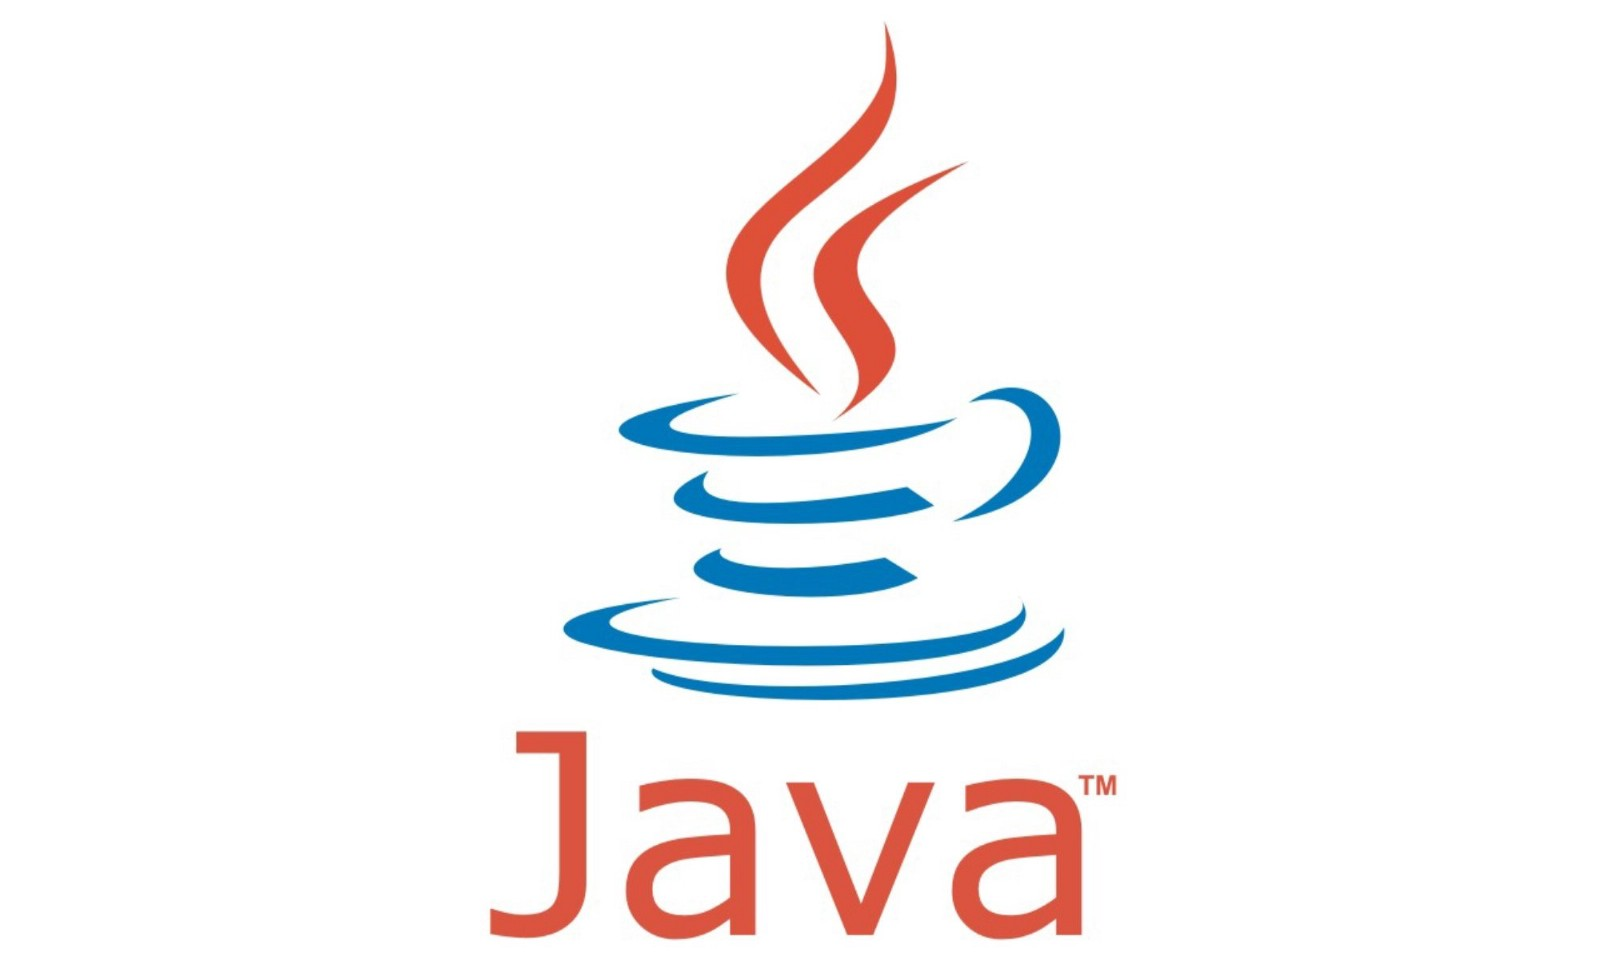 How To Make A Executable File From Your Java Code \u2013 Sulabh Shrestha